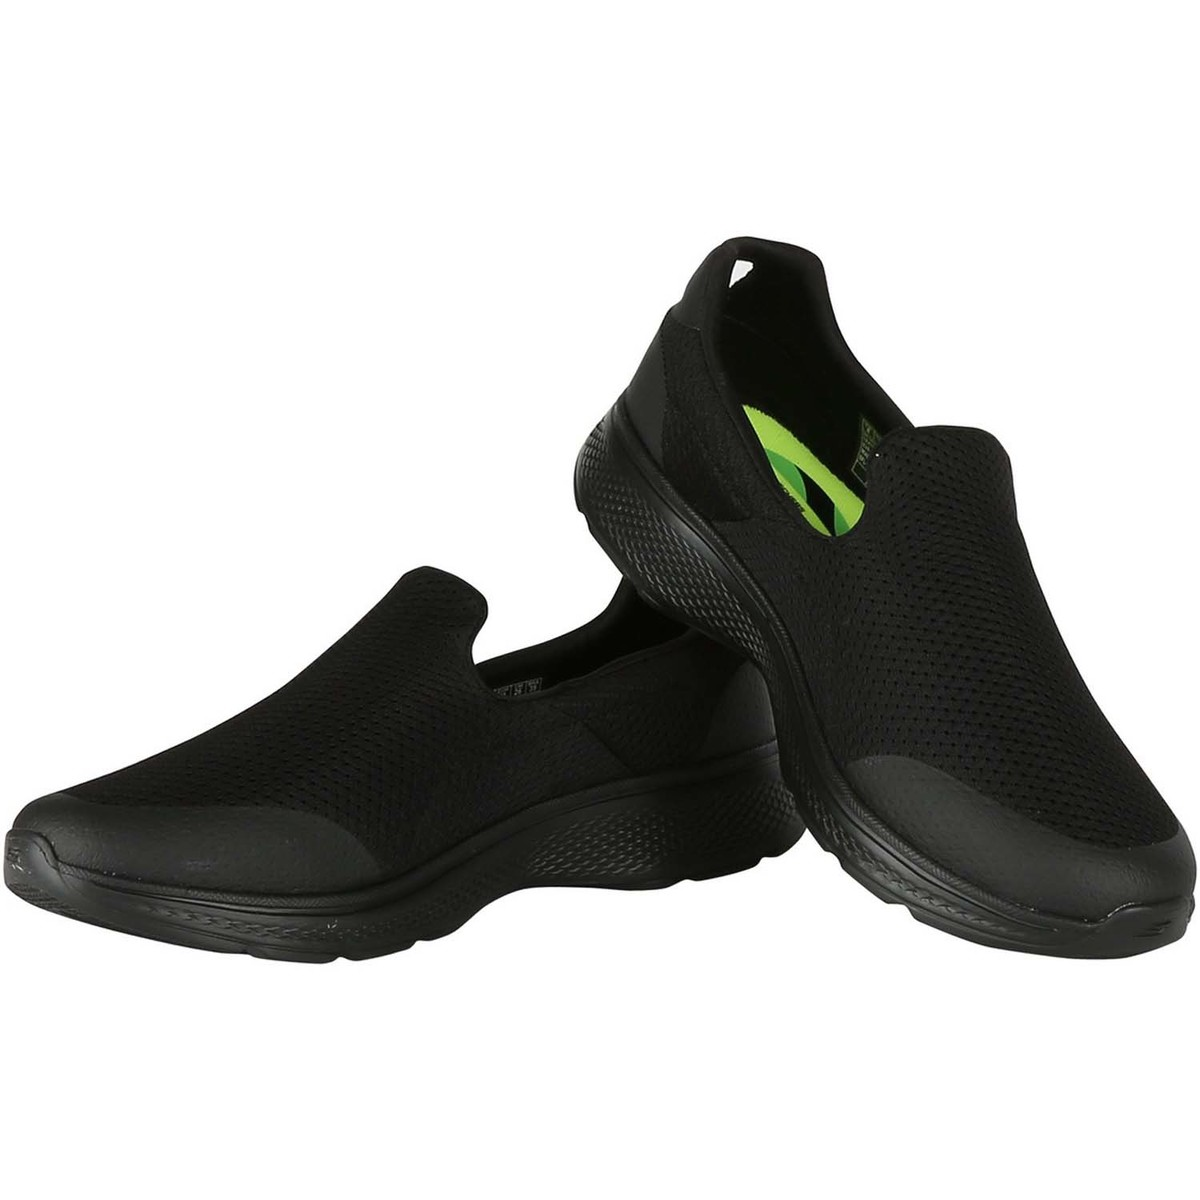 what stores carry skechers shoes